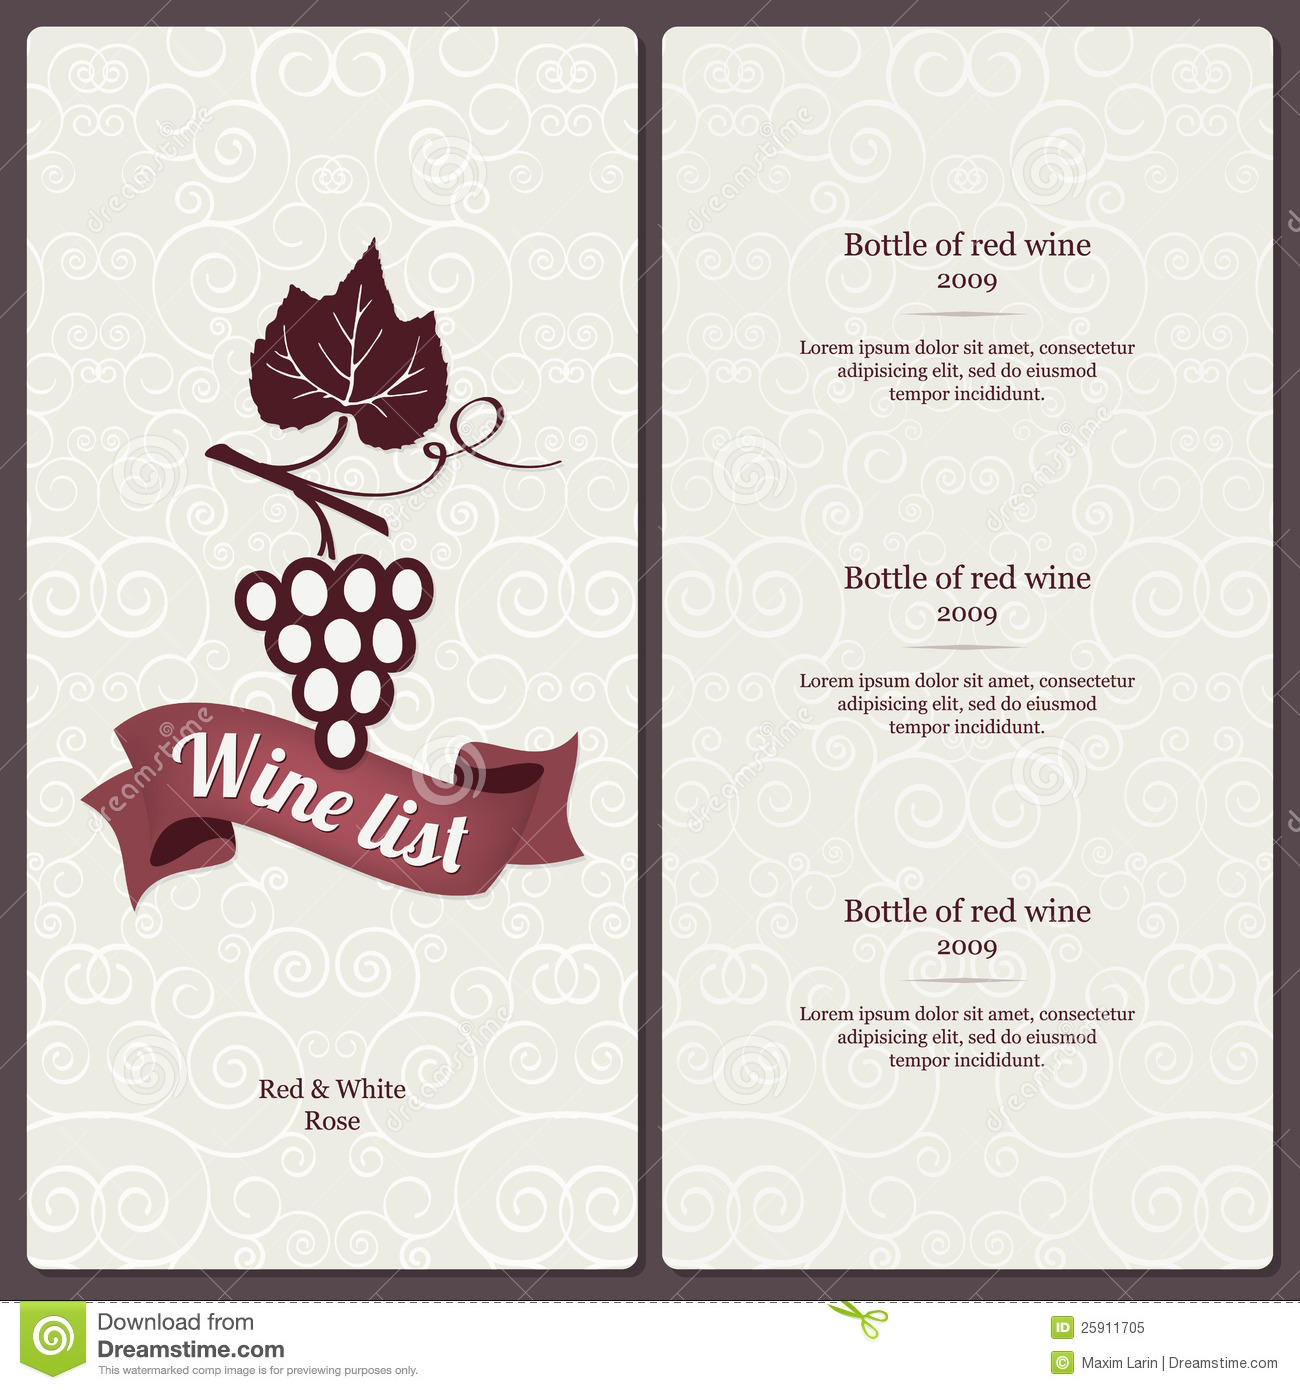 Wine List Design Royalty Free Stock Photo Image 25911705